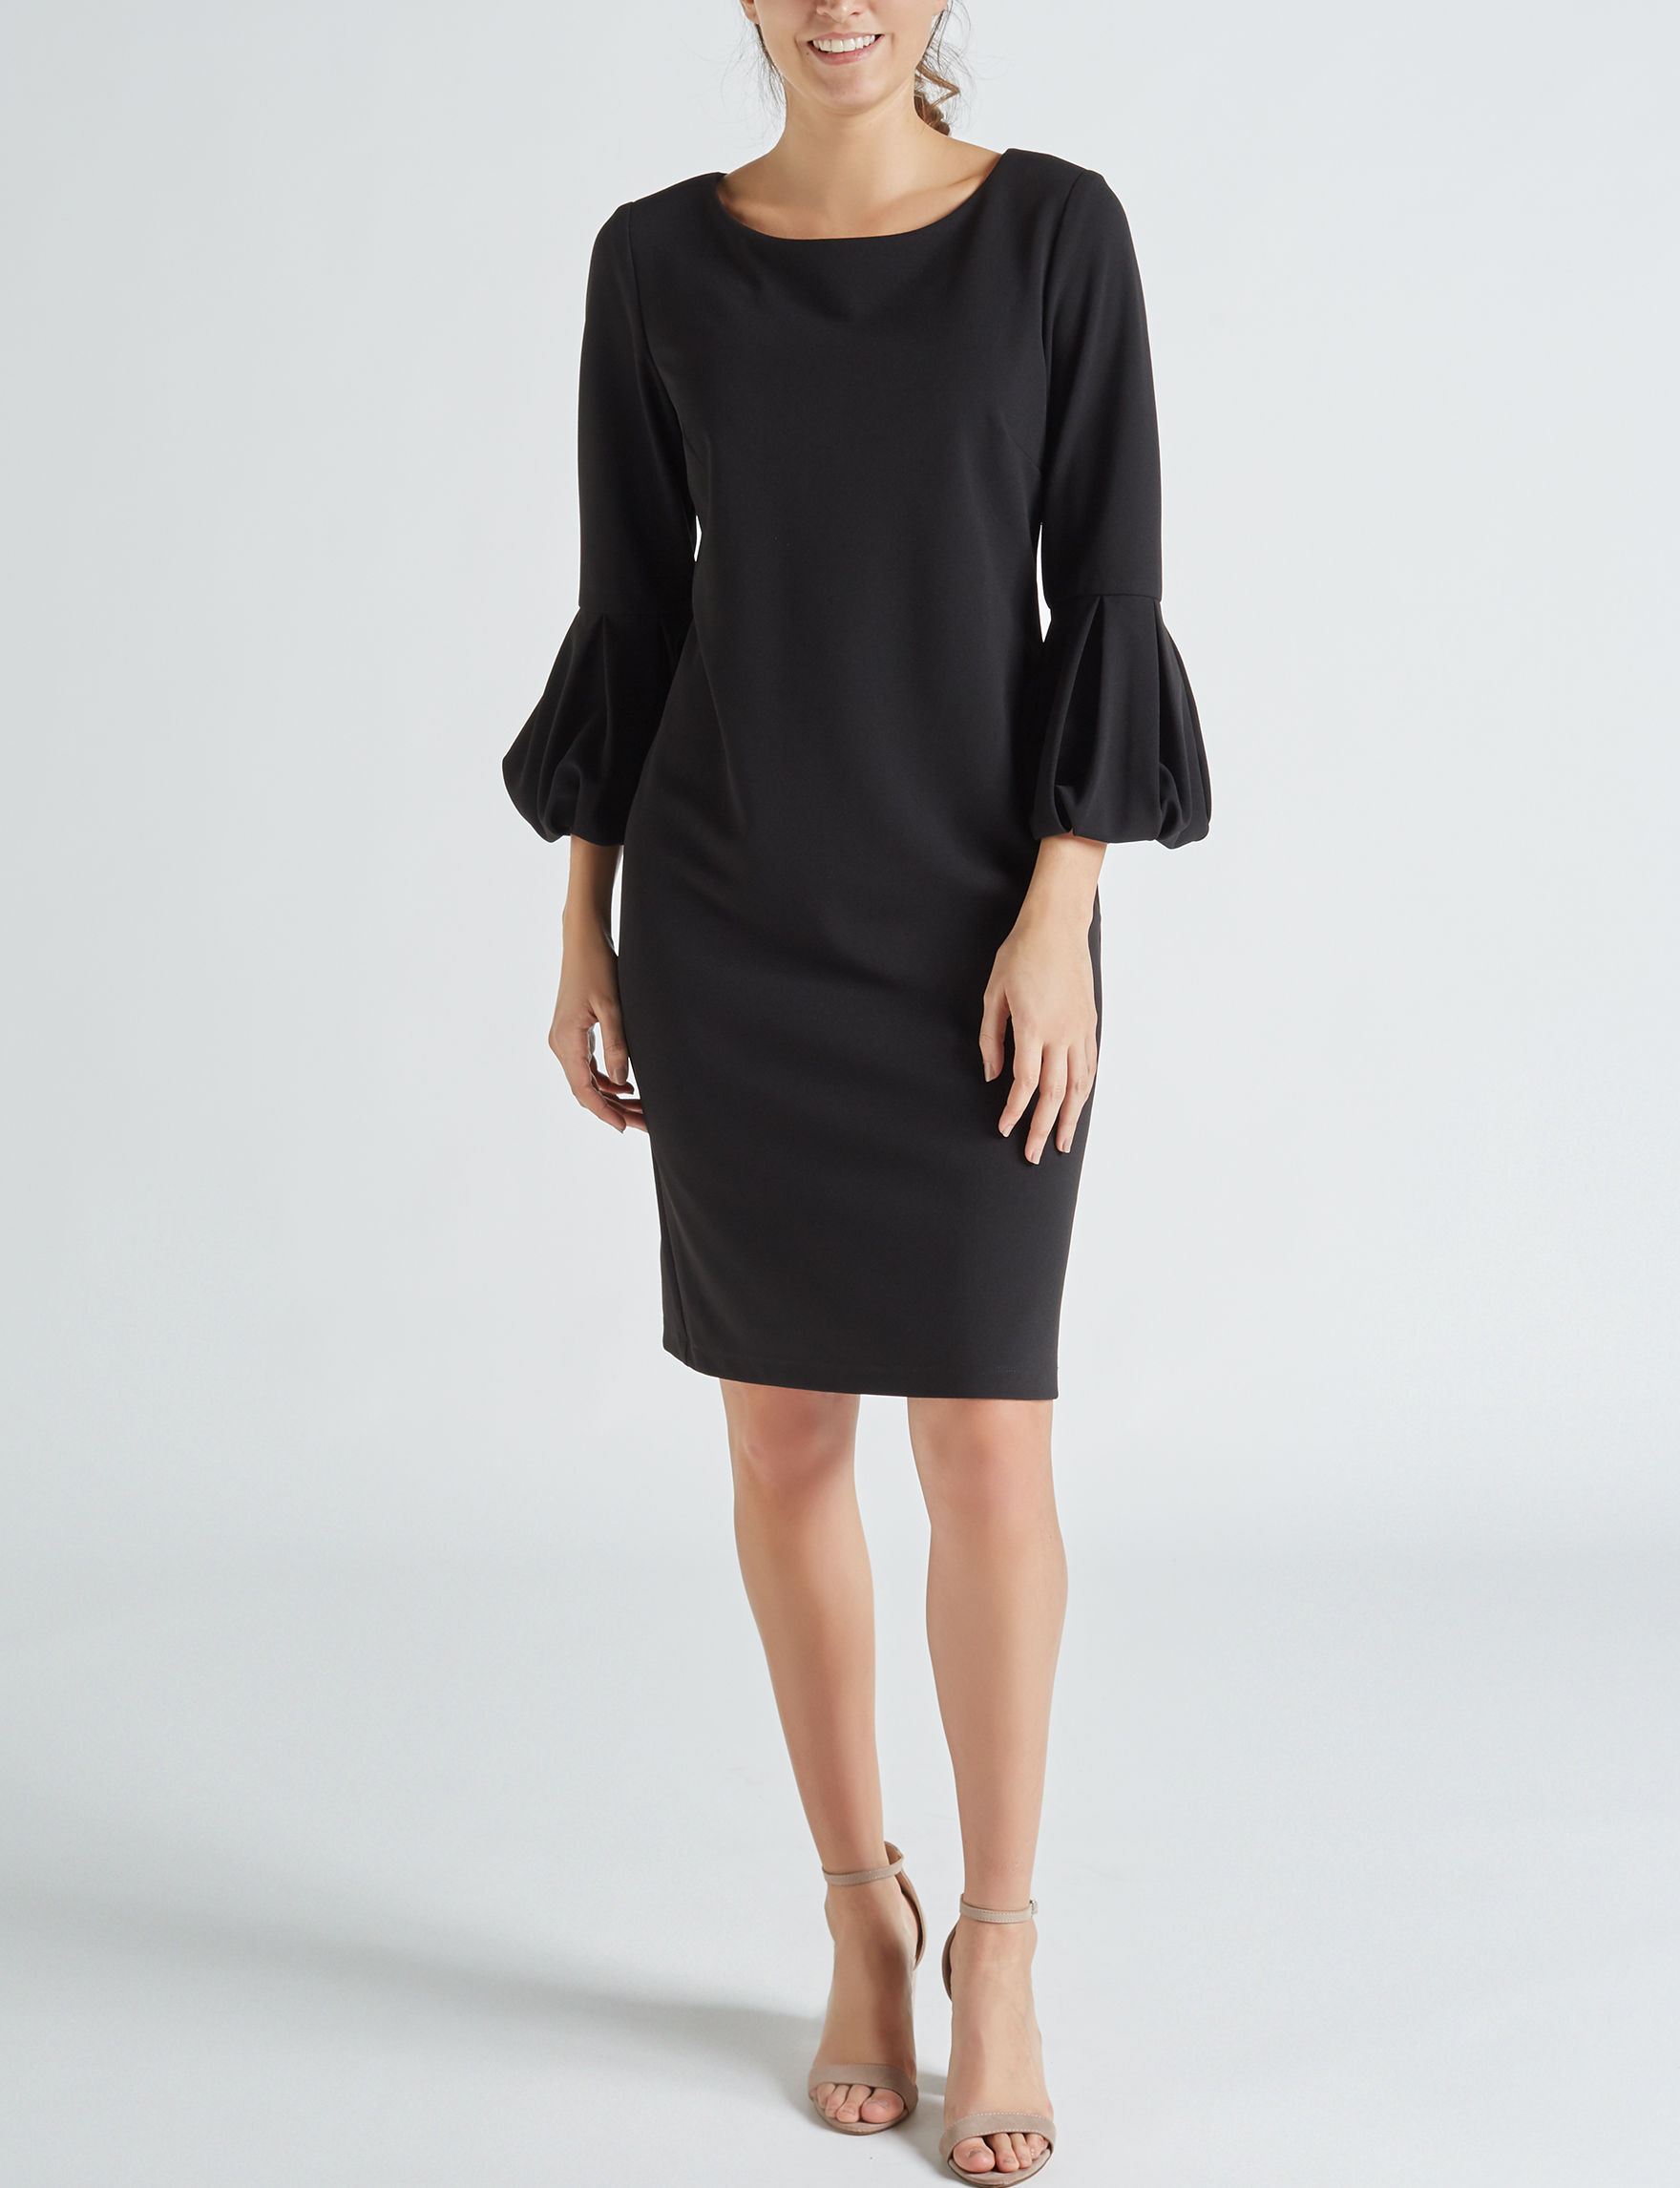 Ronni Nicole Black Everyday & Casual Sheath Dresses